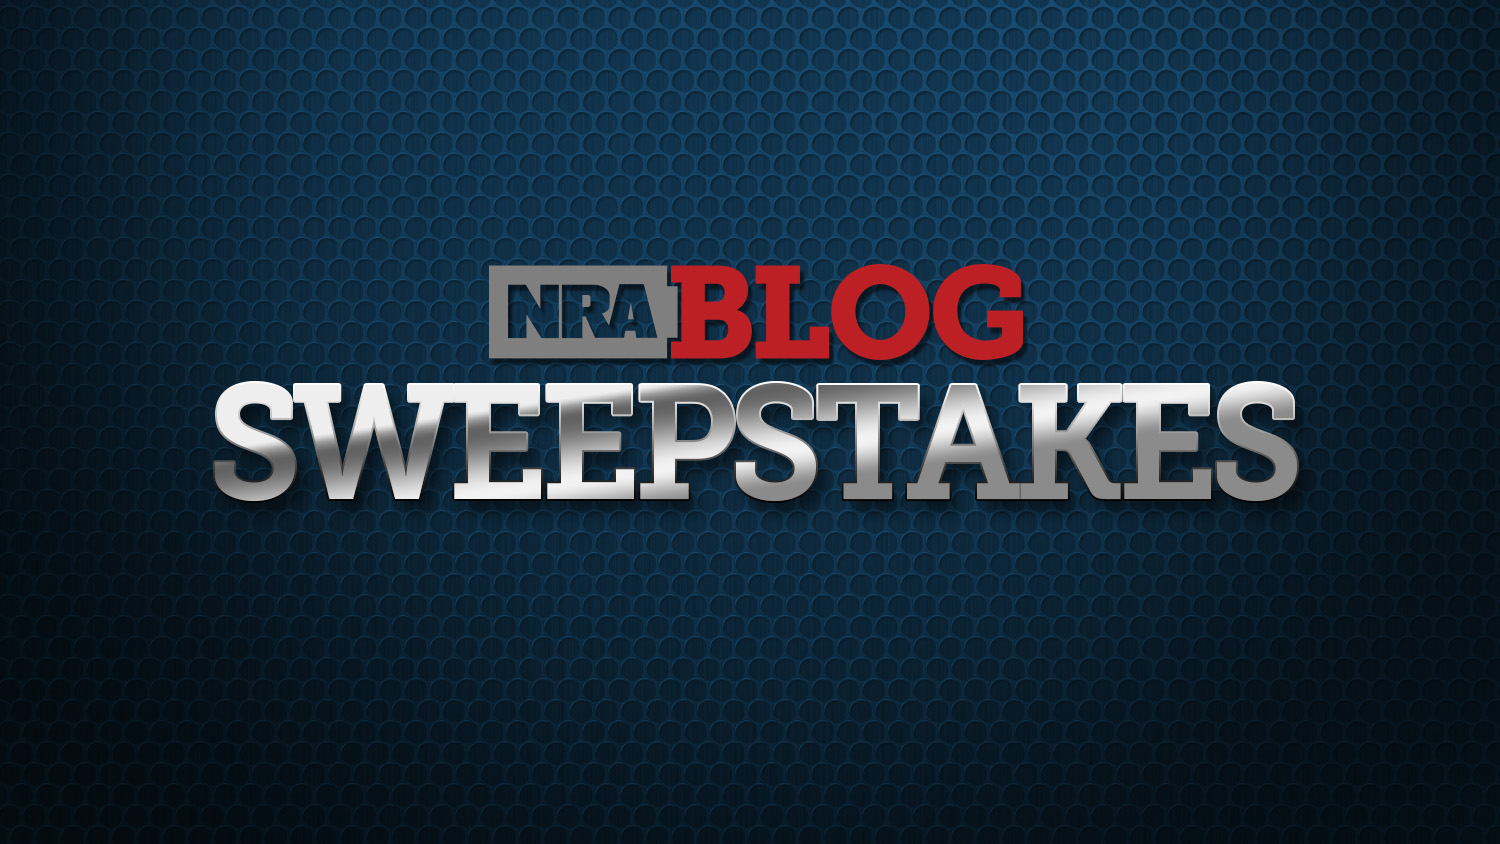 Enter To Win The NRA Blog September Sweepstakes!